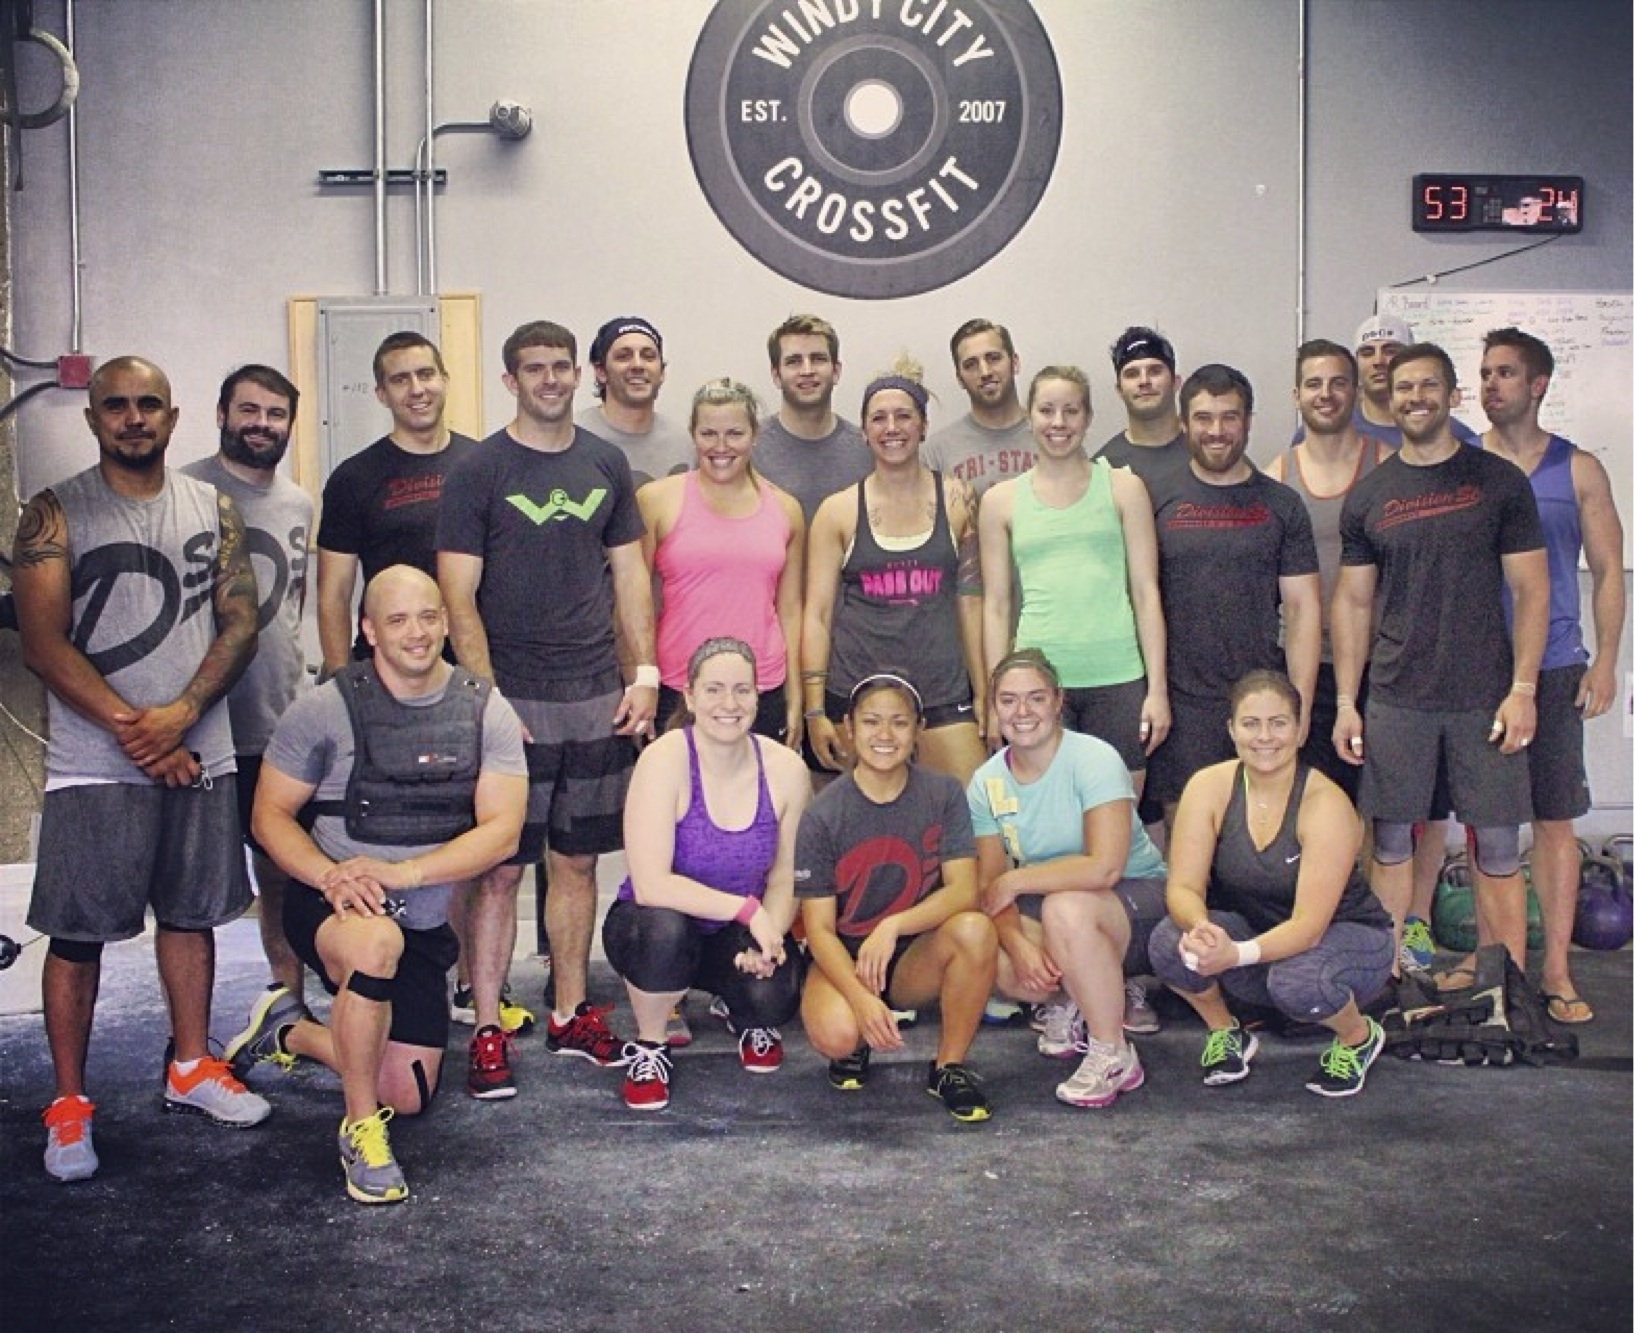 Murph Day 2014 Instagram Splice